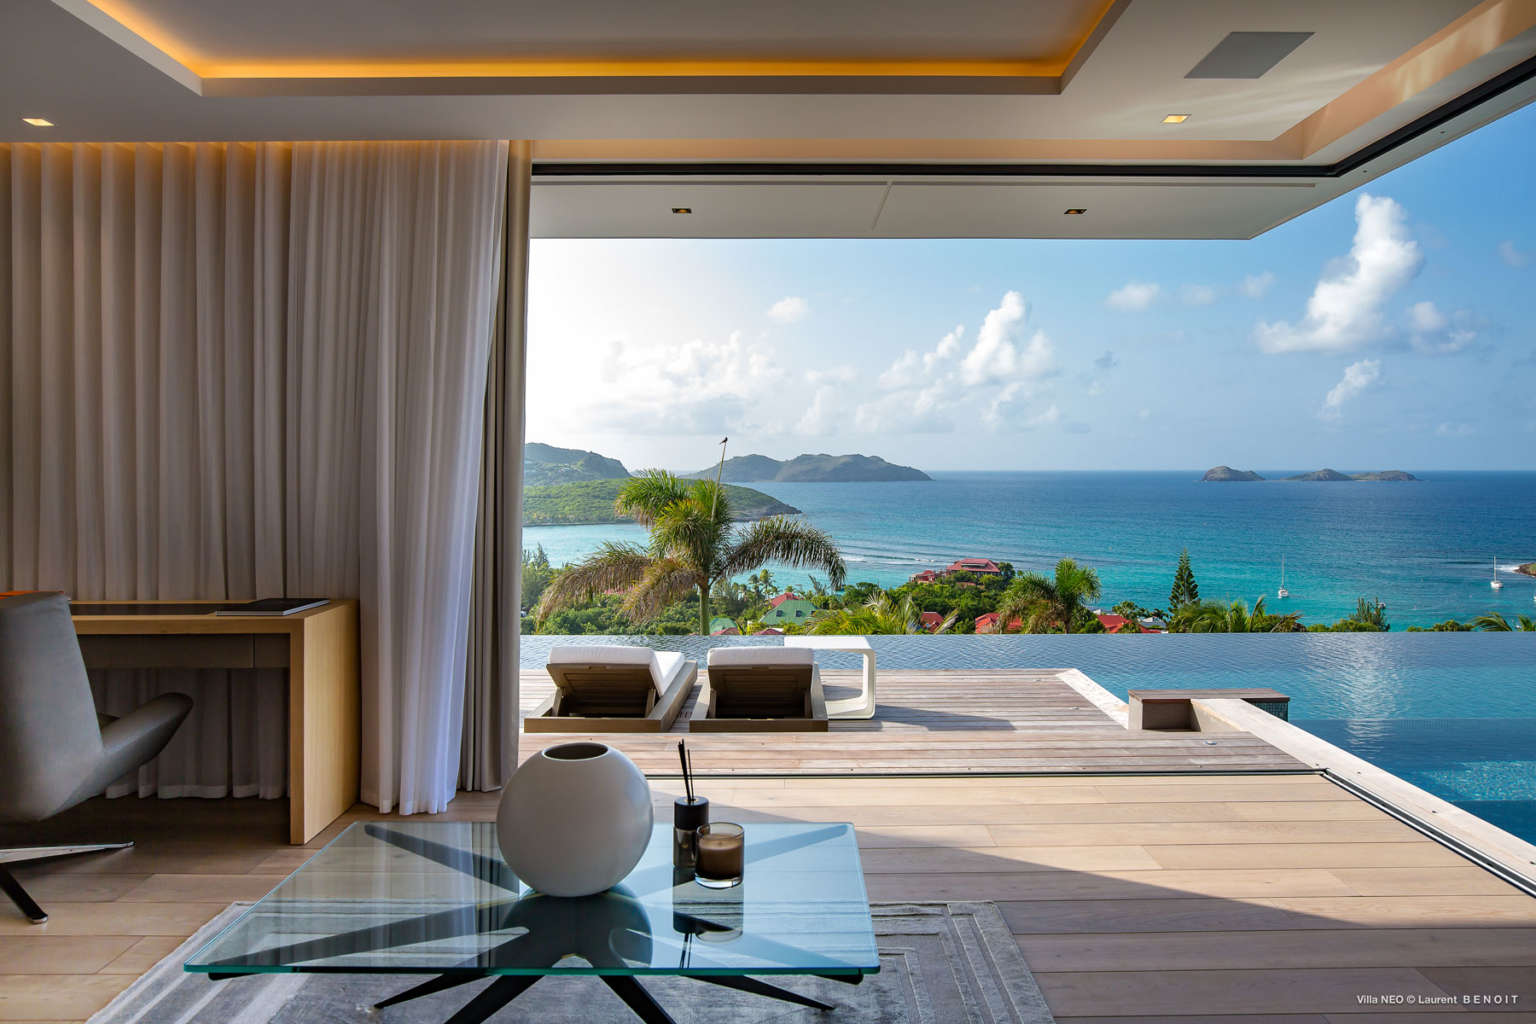 Villa Neo - 2 Levels Fully Air Conditioned Villa Rental St Barth with Panoramic View of St Jean bay and the Ocean - Sea View